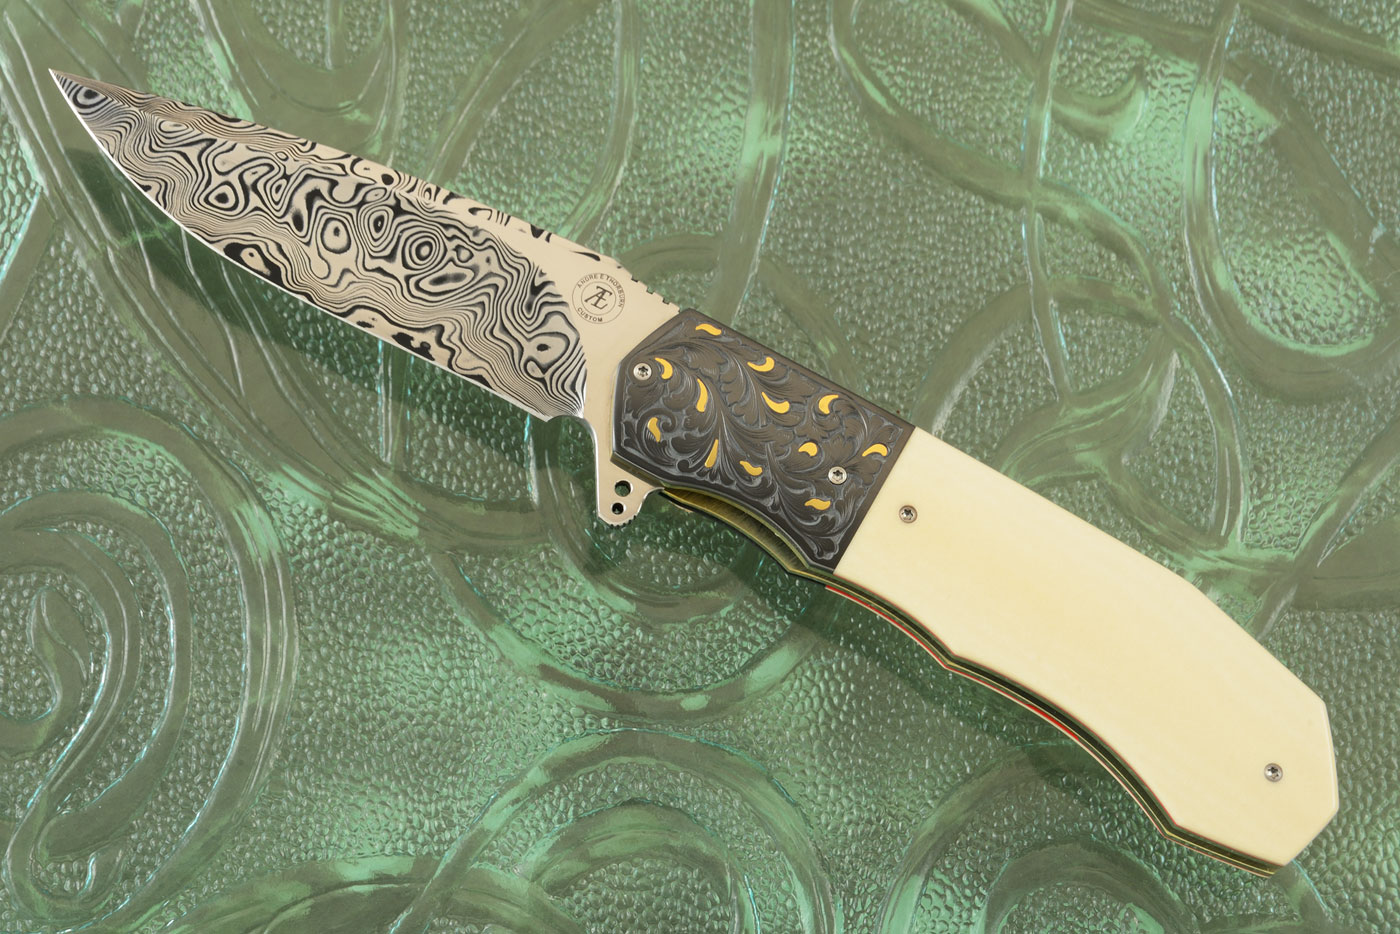 L44 Compact Flipper with Antique Westinghouse Micarta, Damascus, and Engraved Zirconium with Gold Inlays (Ceramic IKBS)